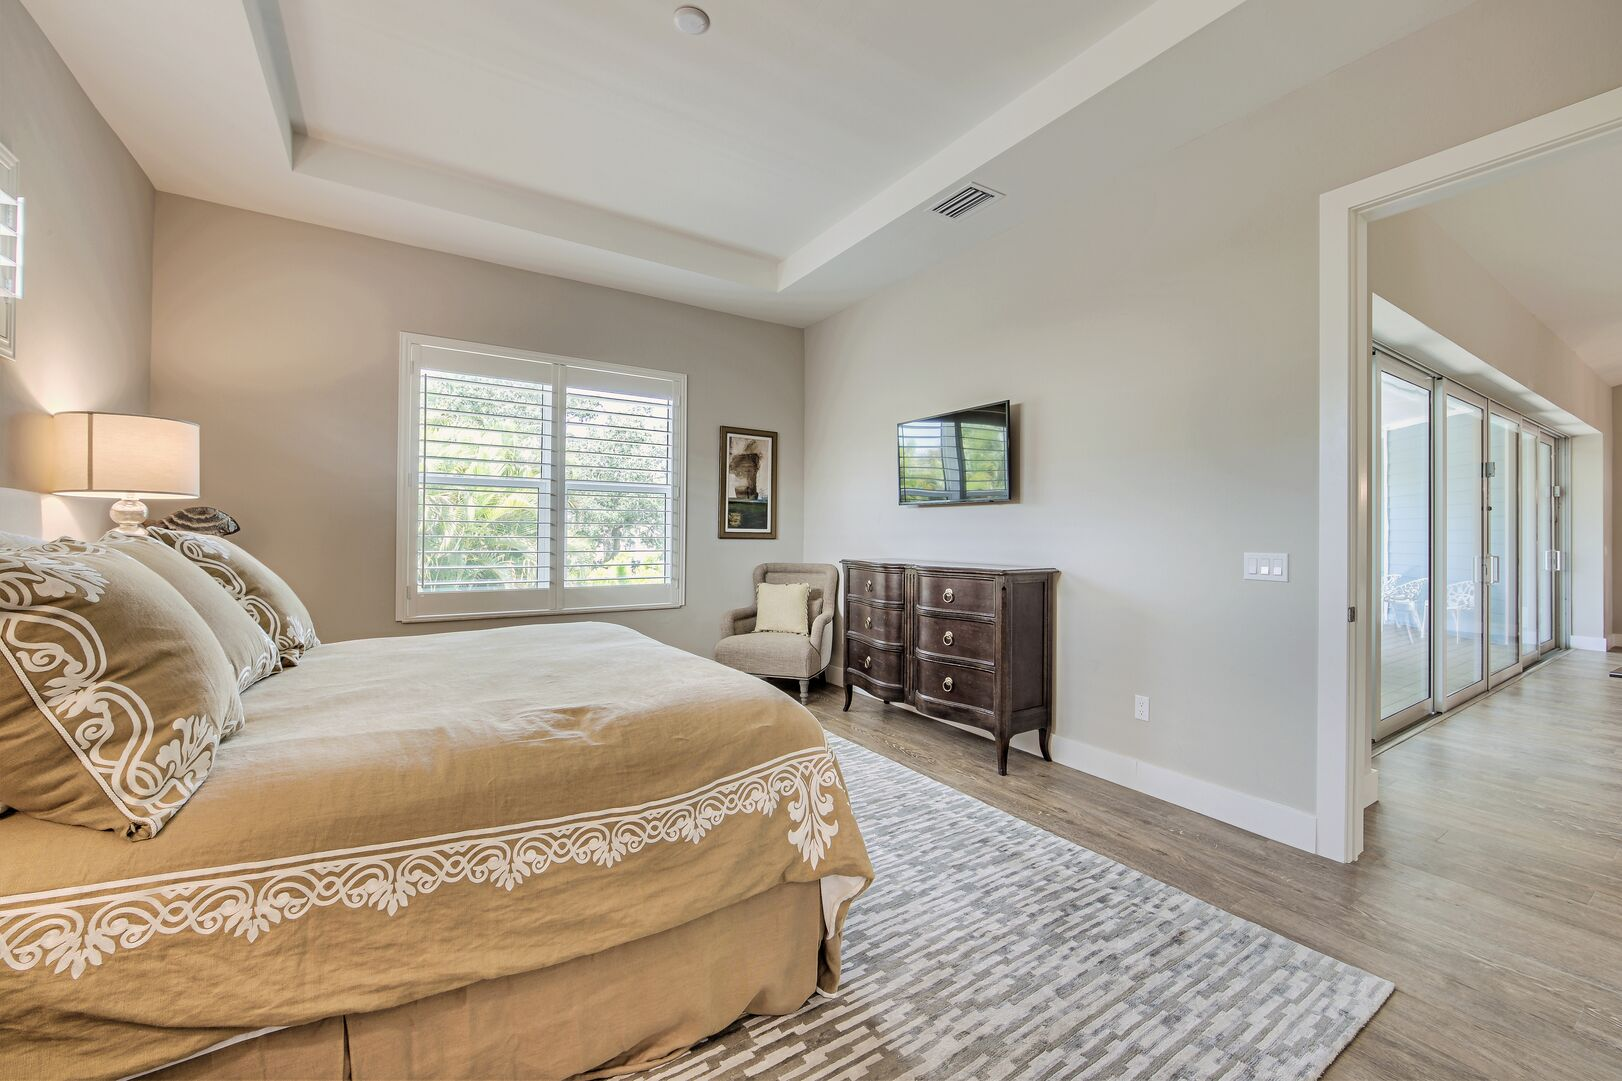 Bedroom with window and wall mounted tv